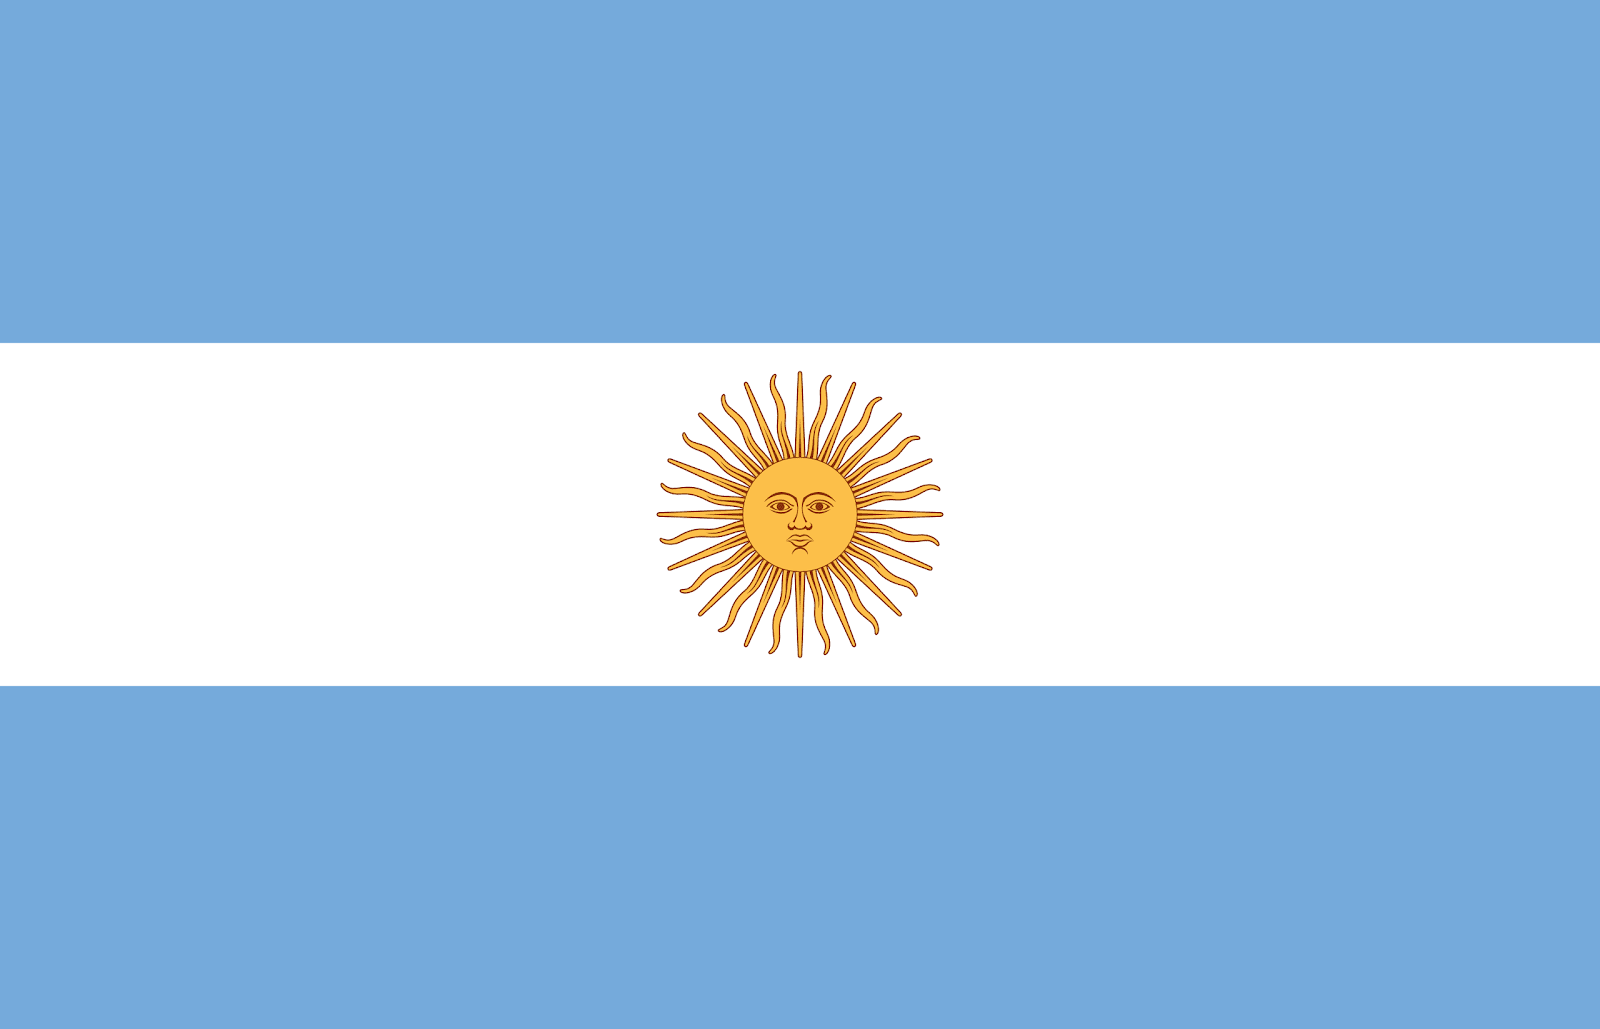 http://argentinaflag.facts.co/ArgentinaFlagImage1.png